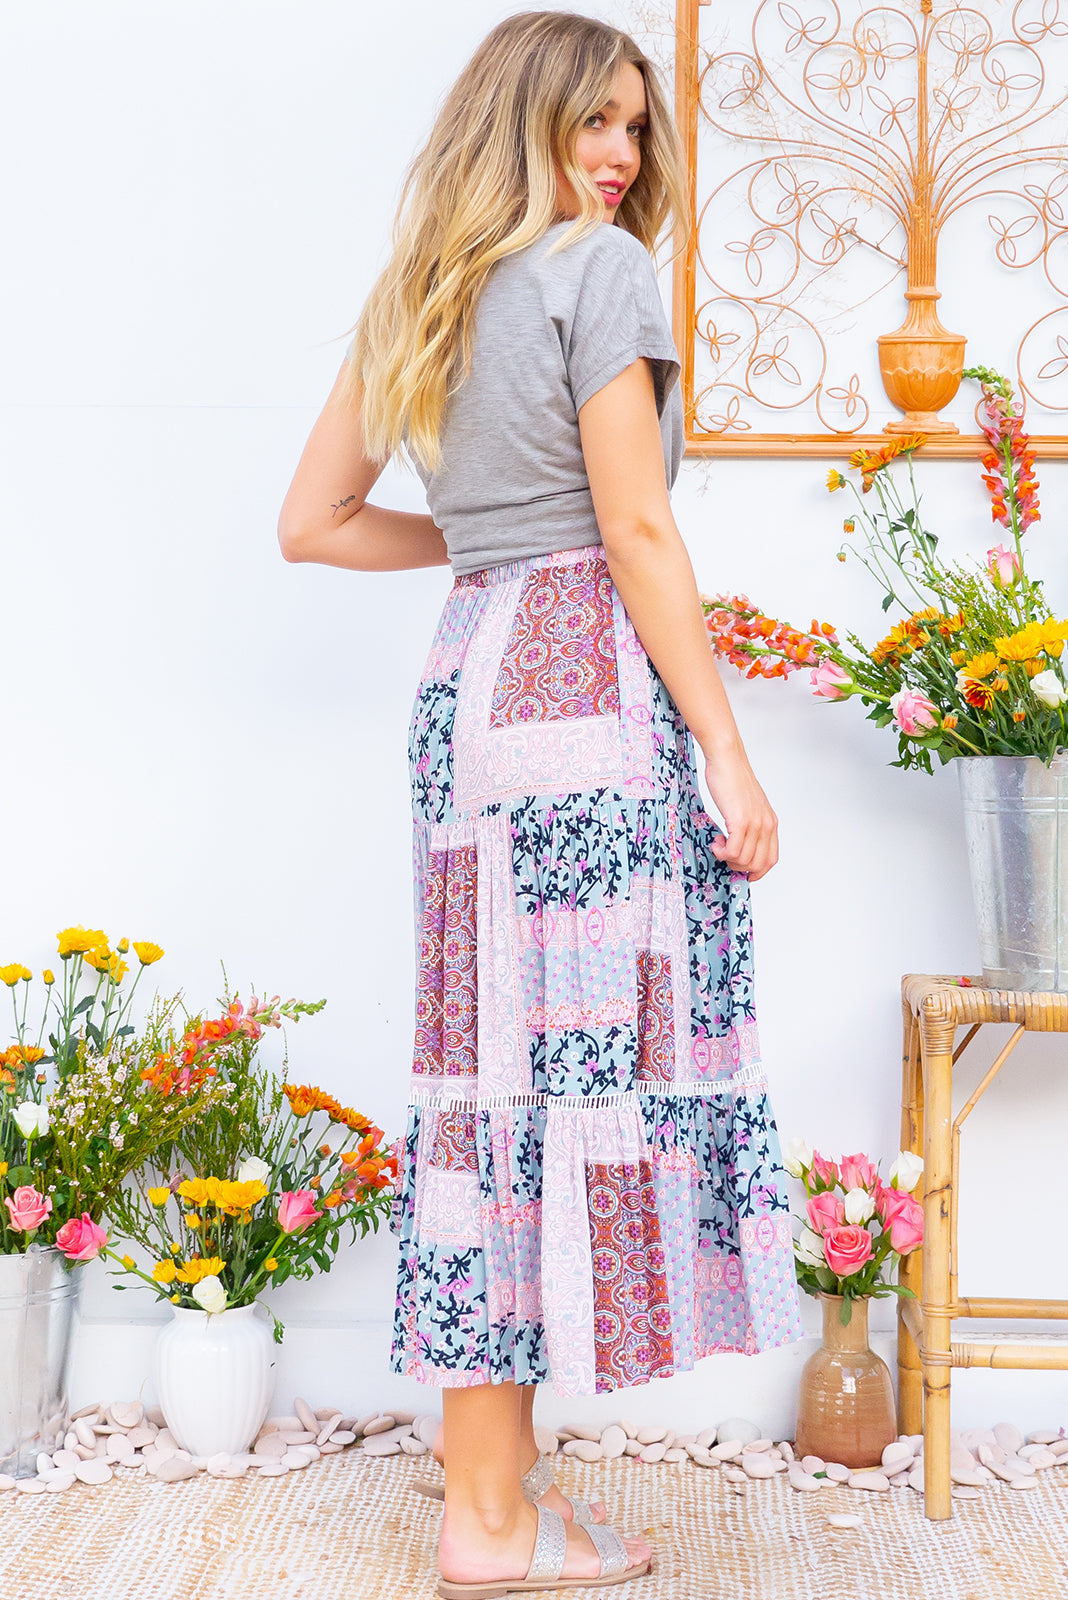 Bonnie Bohemian Blues Maxi Skirt is a tiered skirt and features an elasticated waist, side pockets and cotton insertion lace and it comes in a blue and mauve patchwork bohemian print